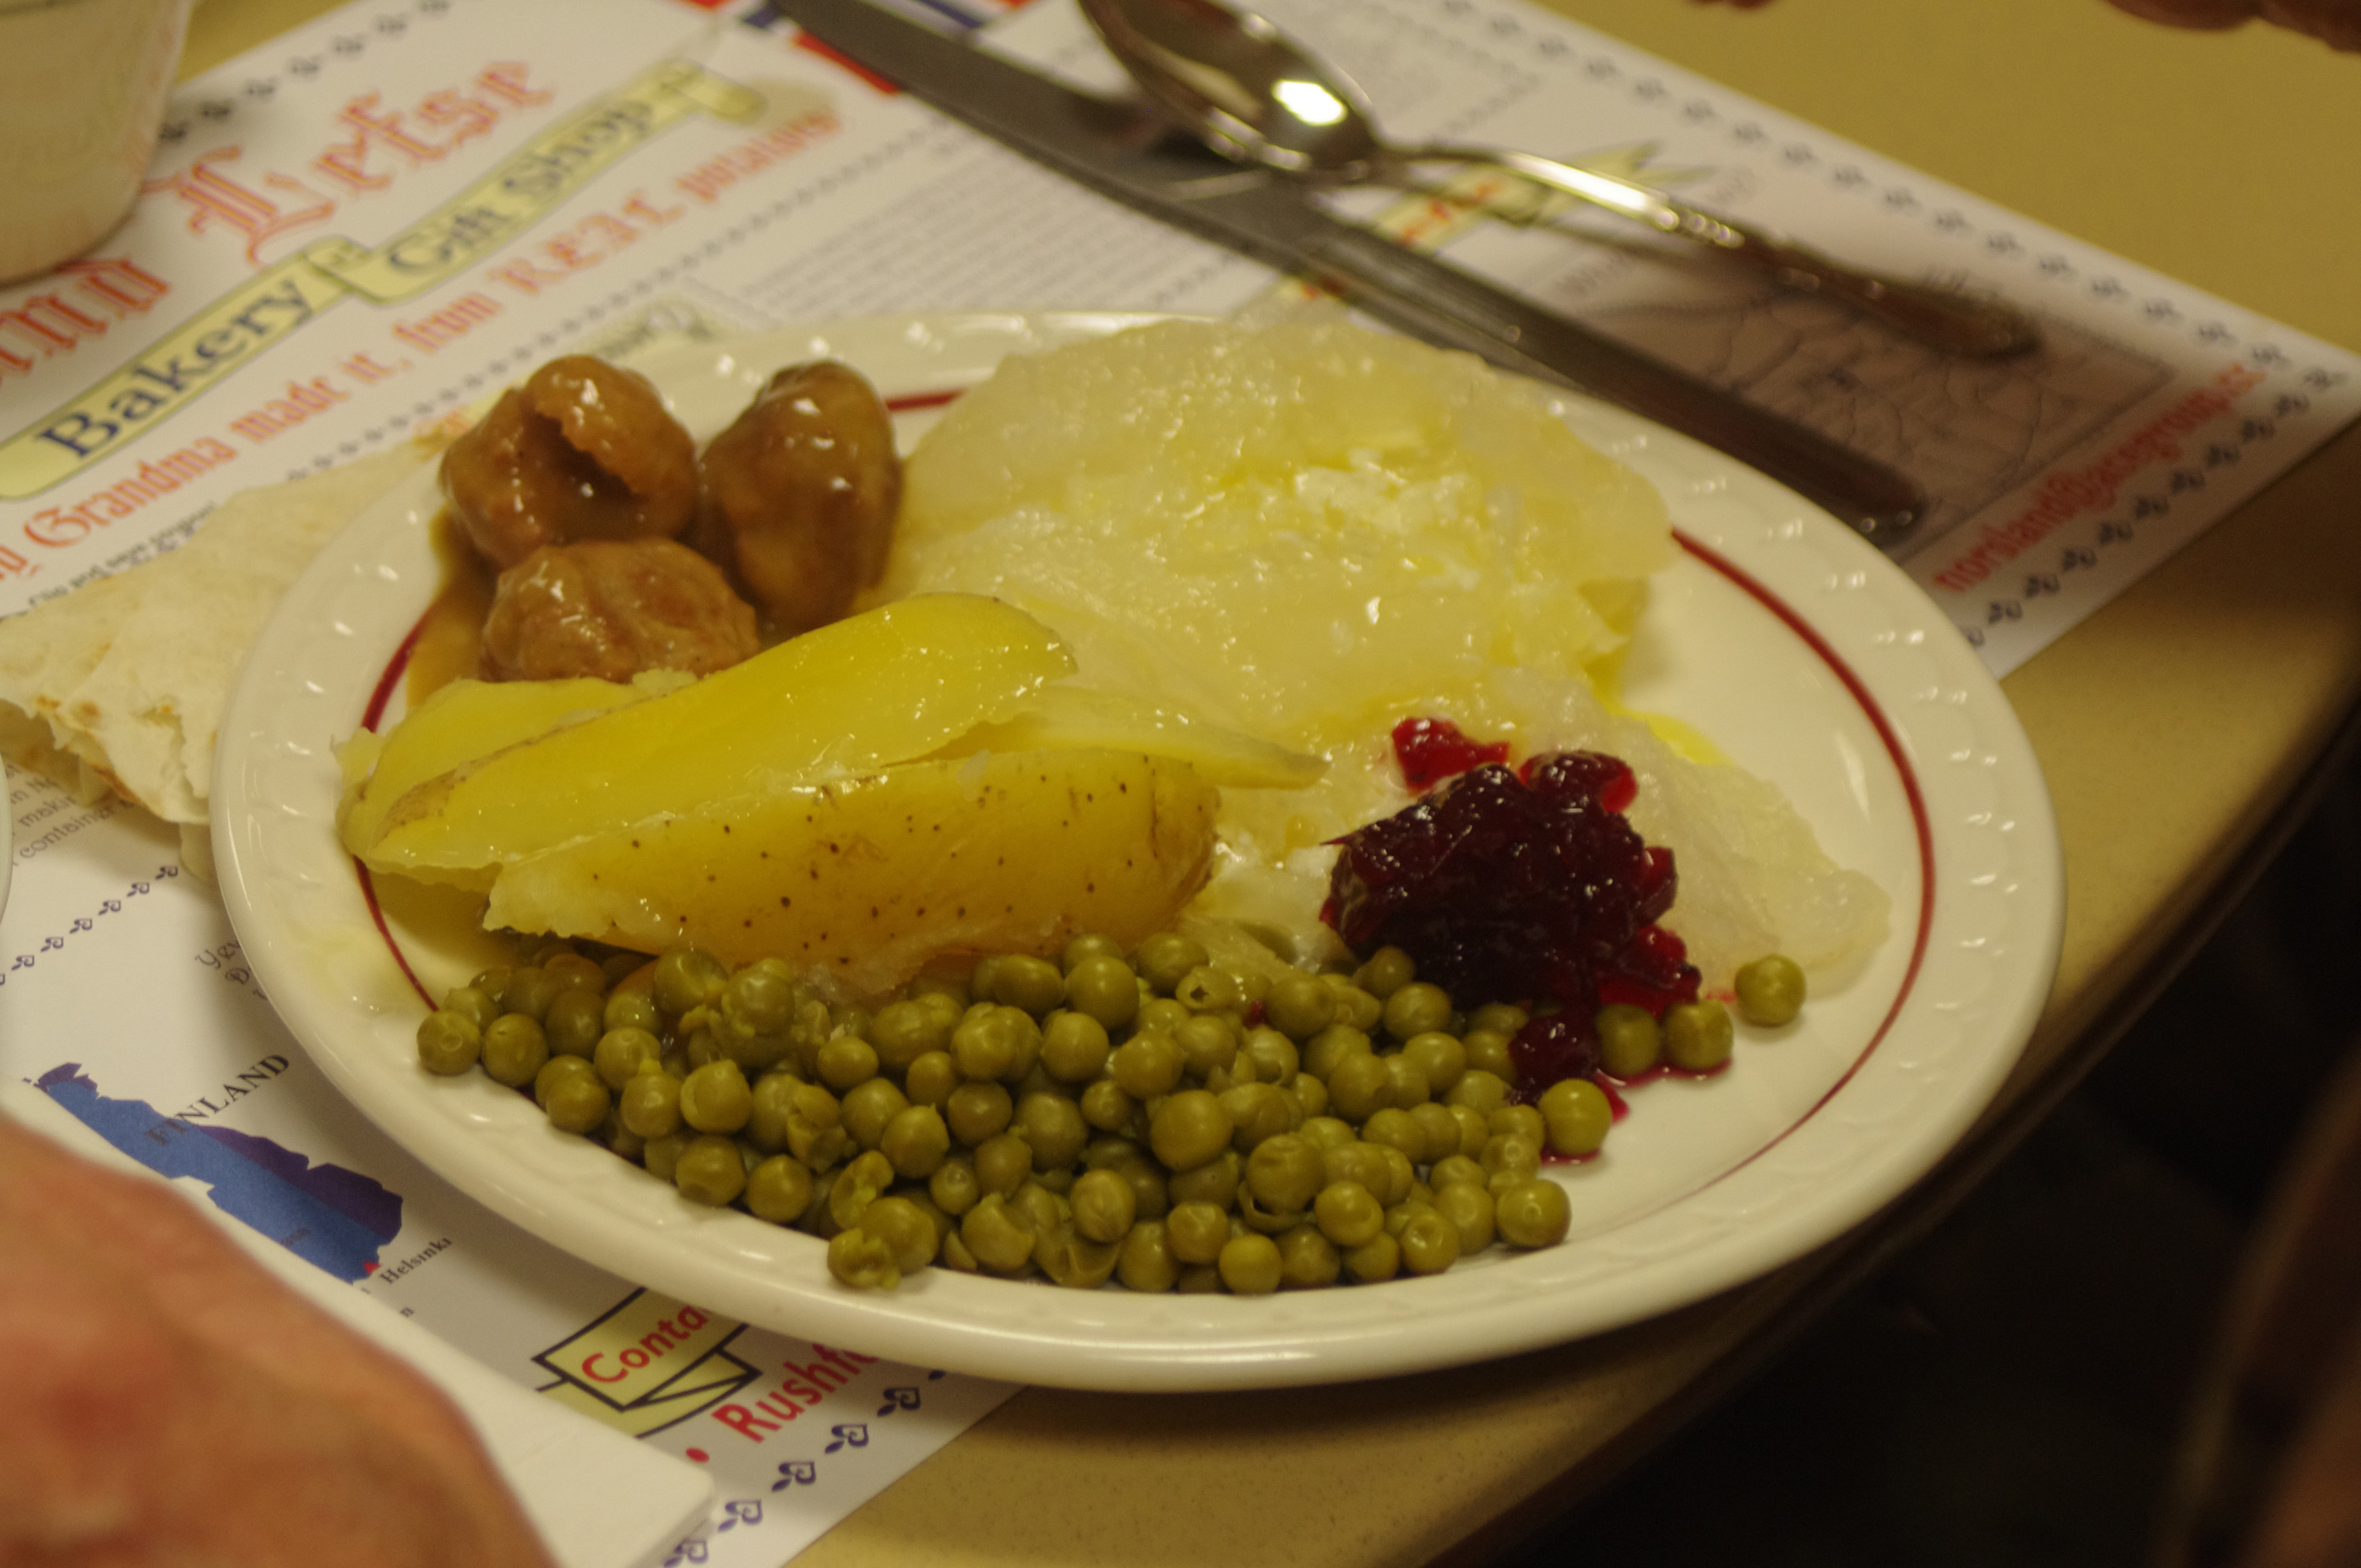 Image of meatballs, lutefisk, cranberry relish, peas and potatoes on a plate